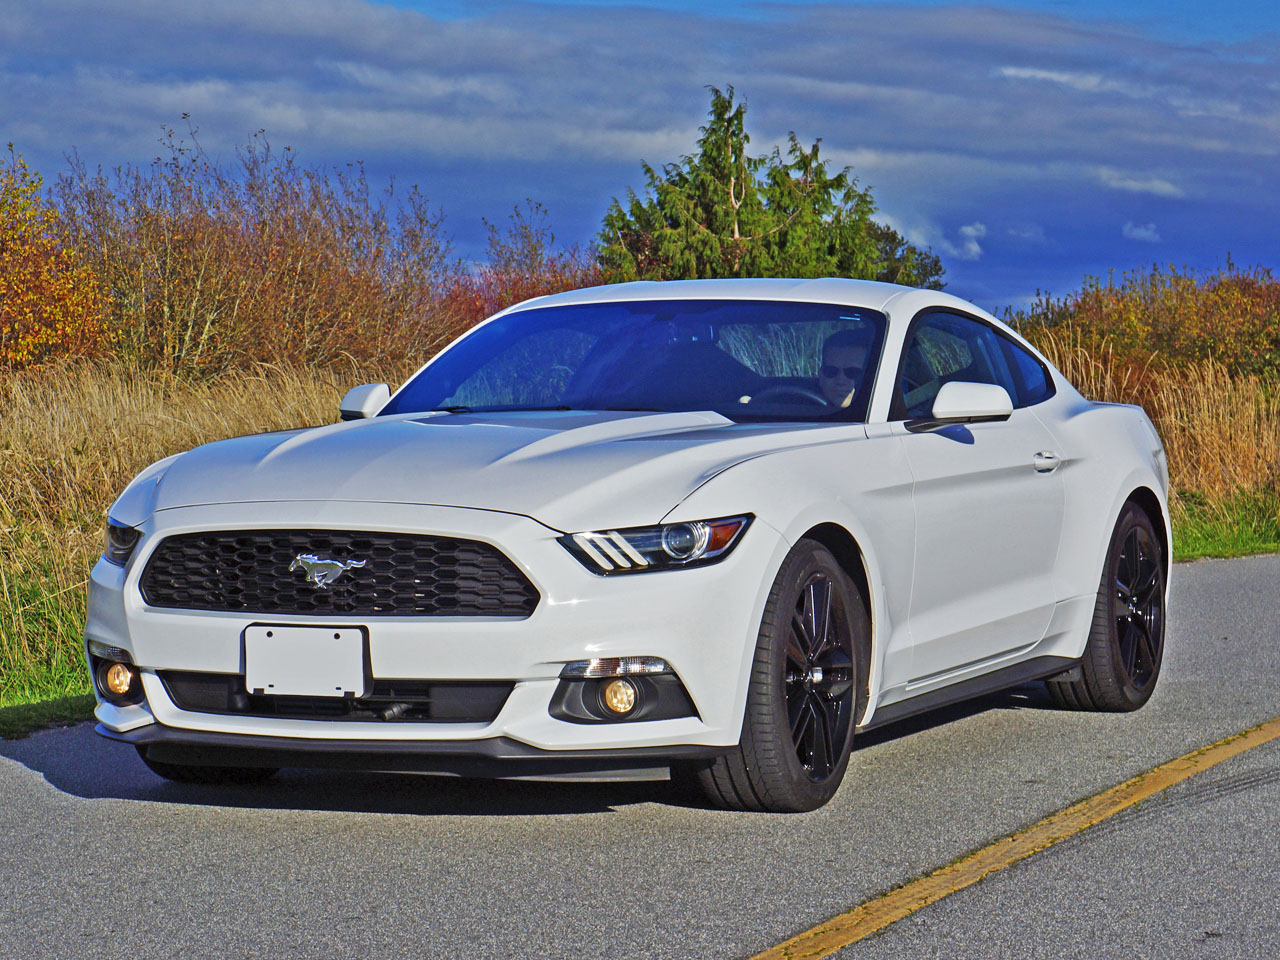 2016 Ford Mustang Ecoboost Fastback Road Test Review | CarCostCanada